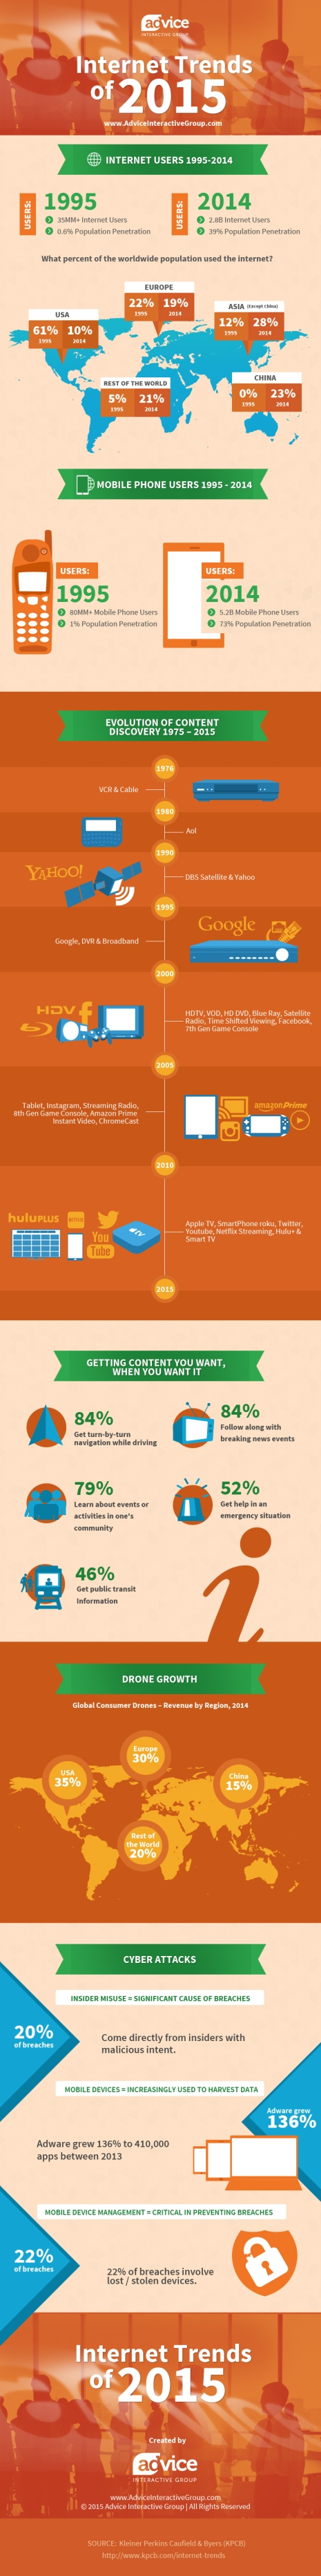 infographic-internet-trends-of-2015